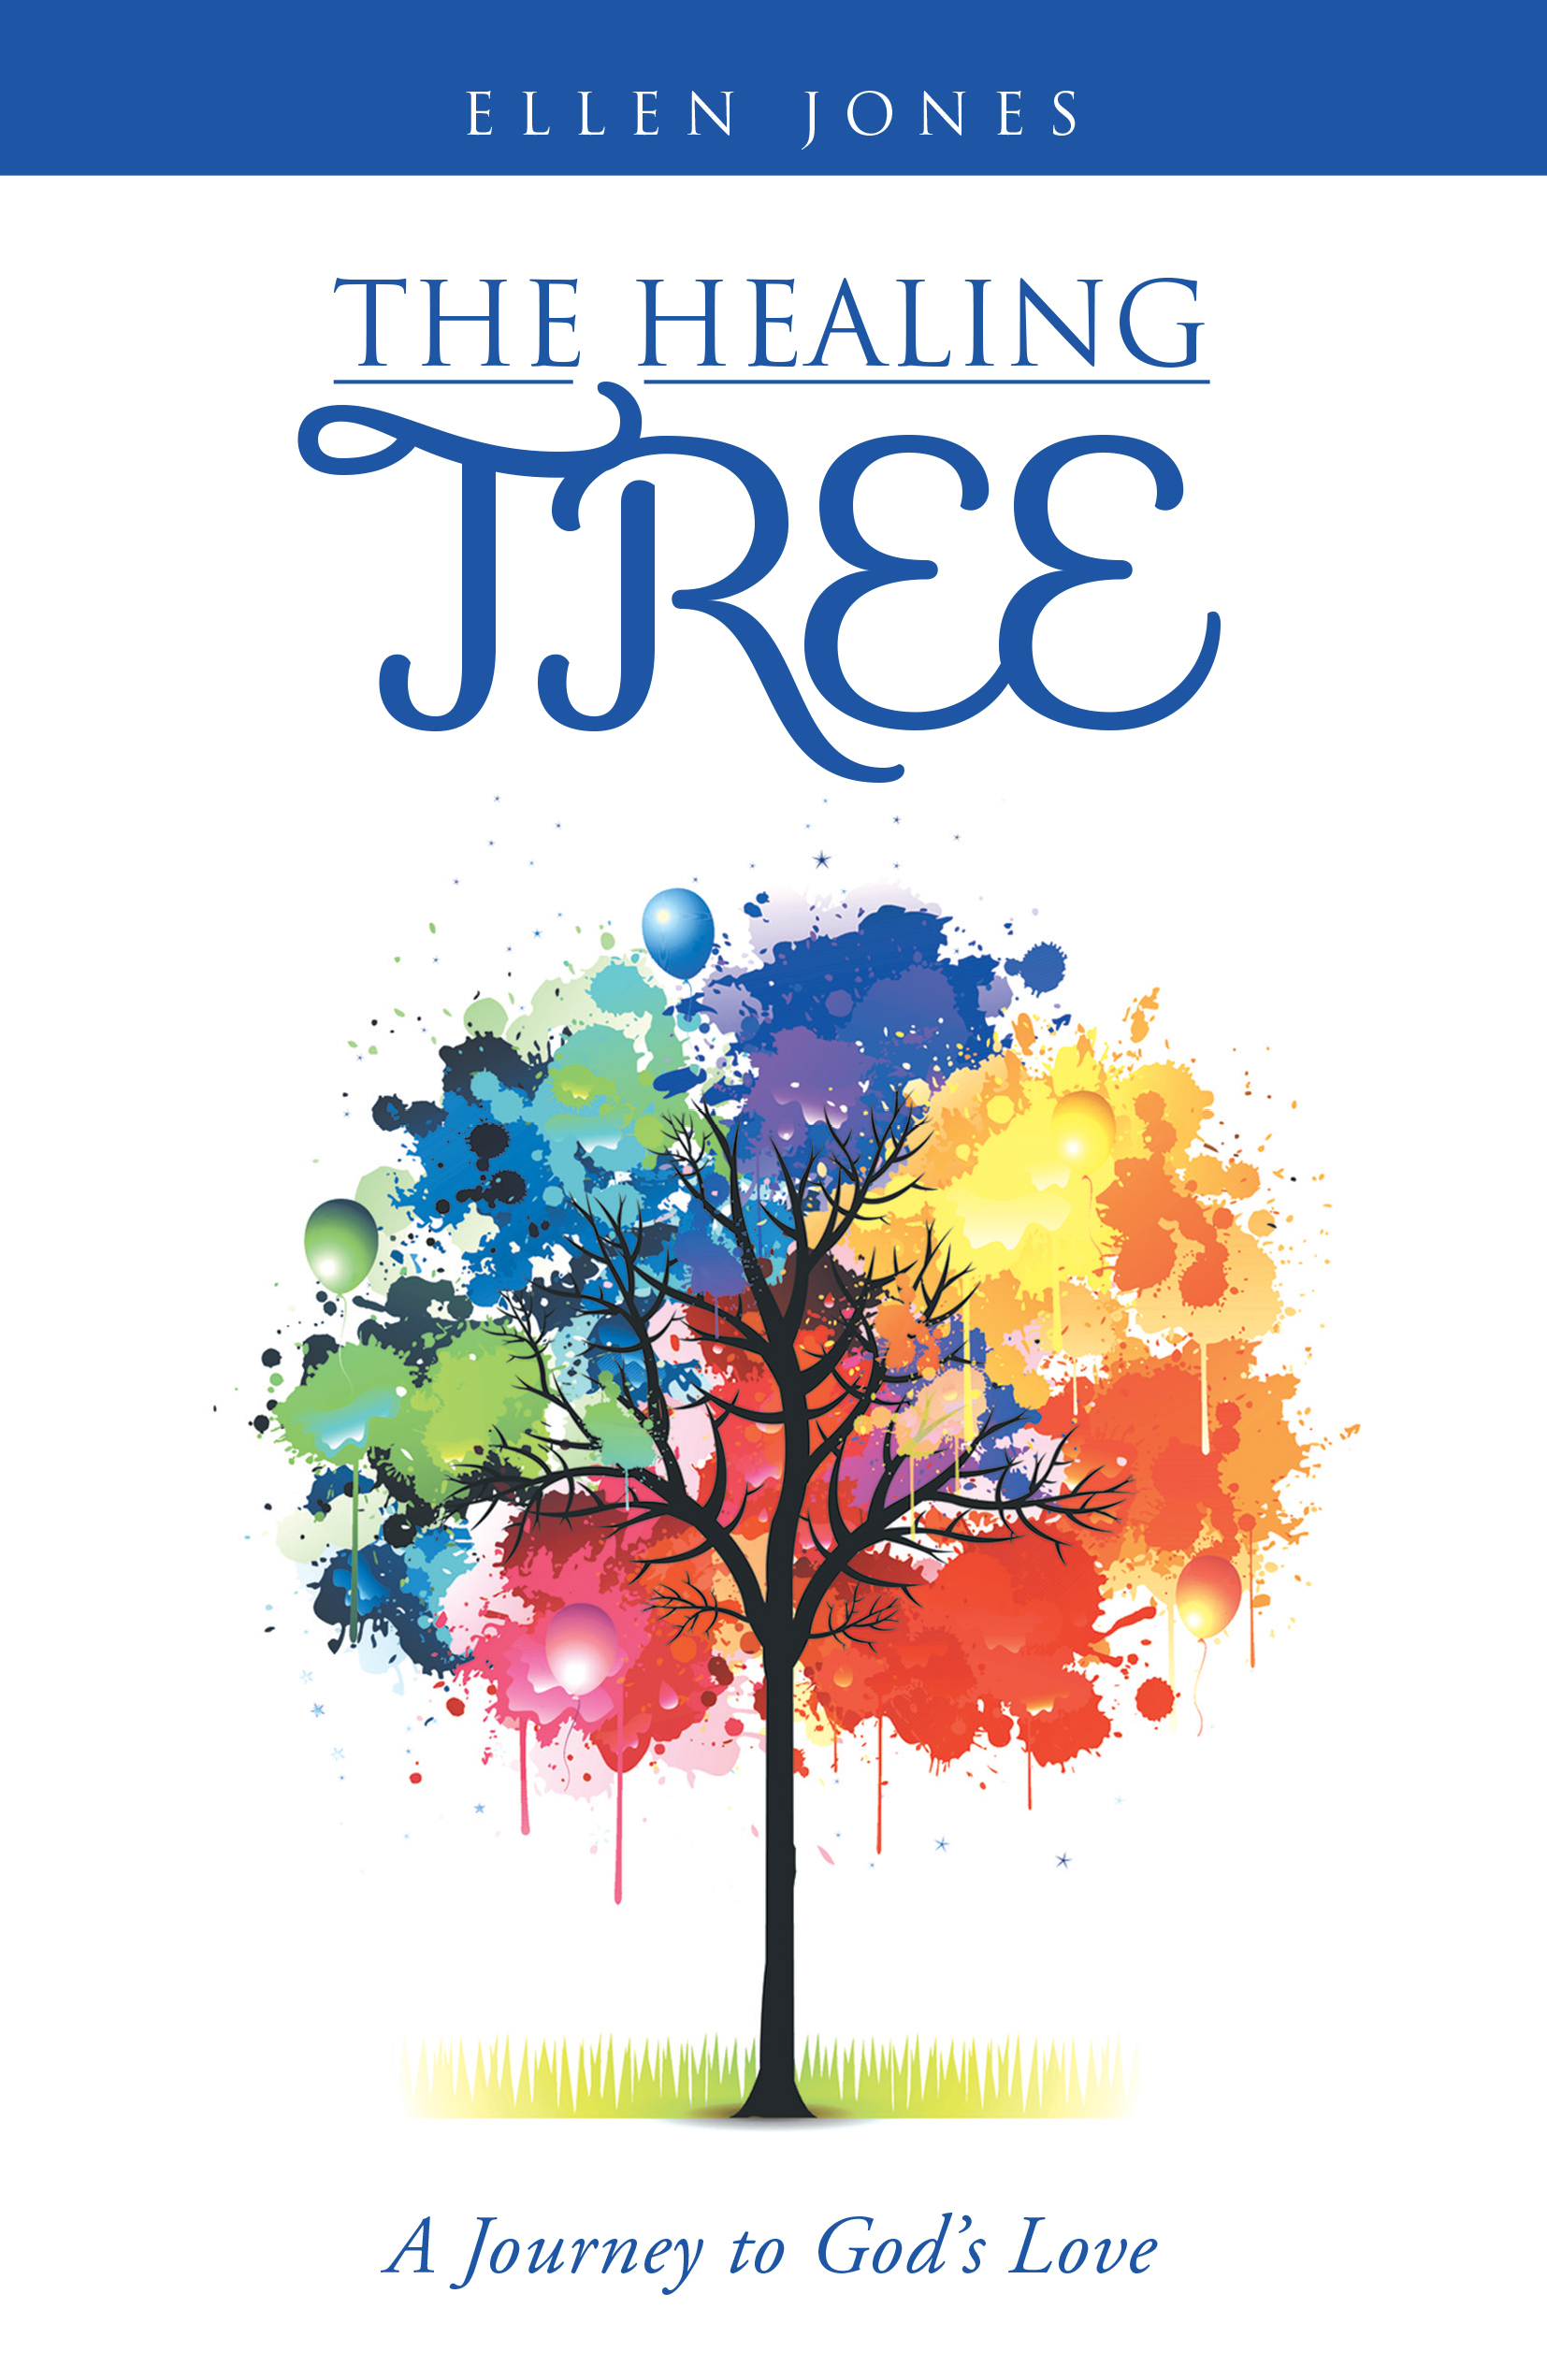 The Healing Tree - A Journey to God's Love